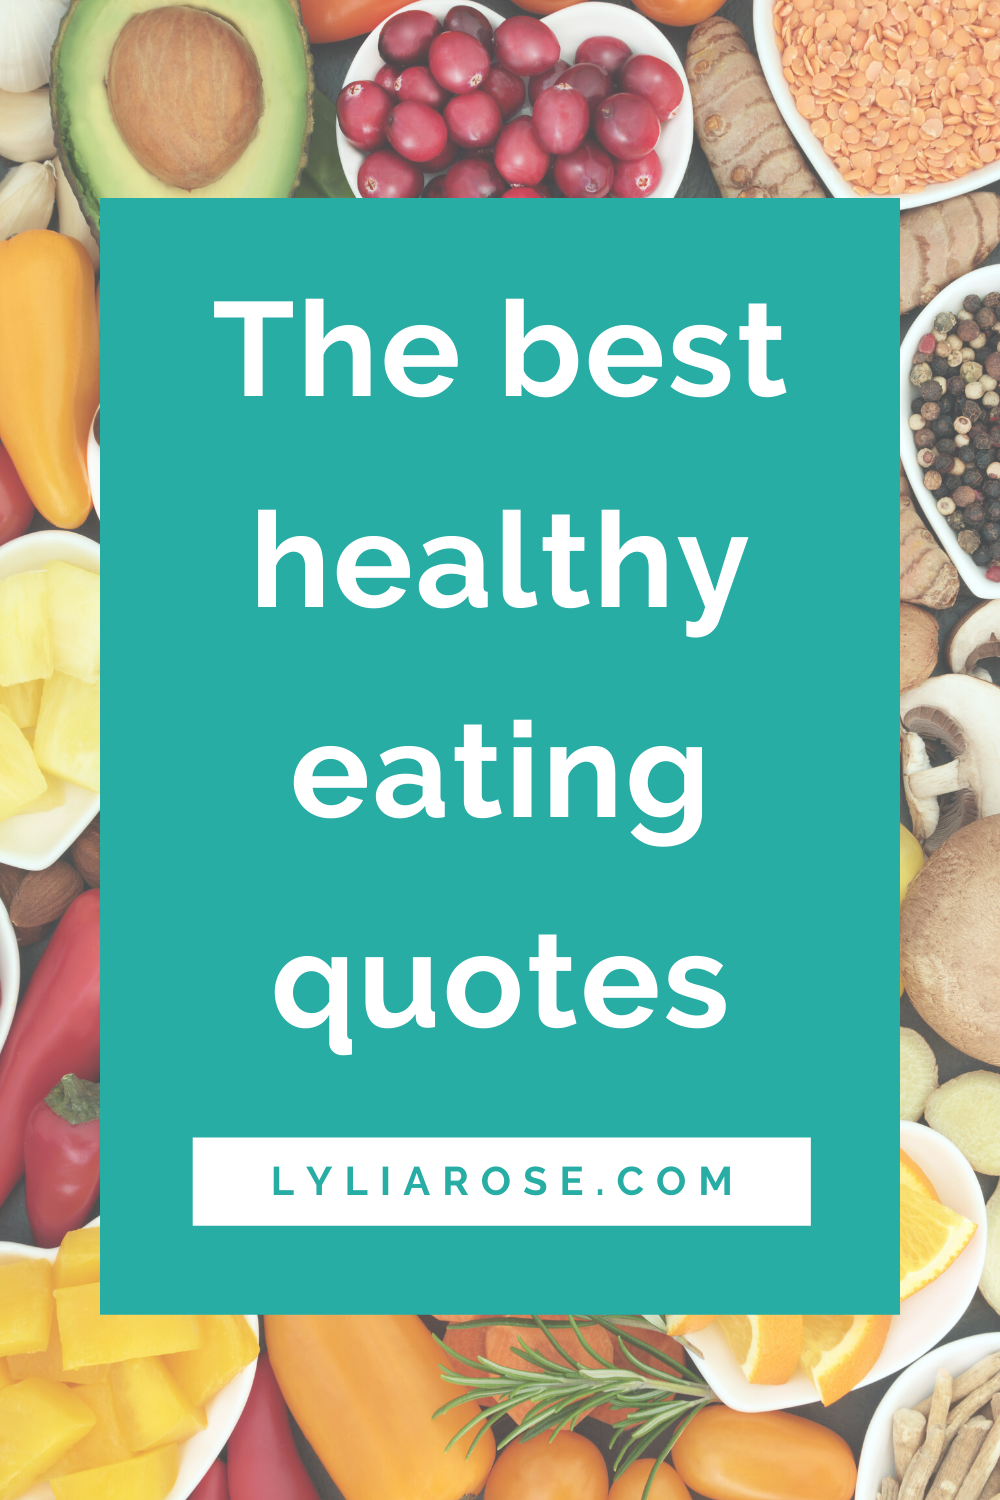 The best healthy eating quotes